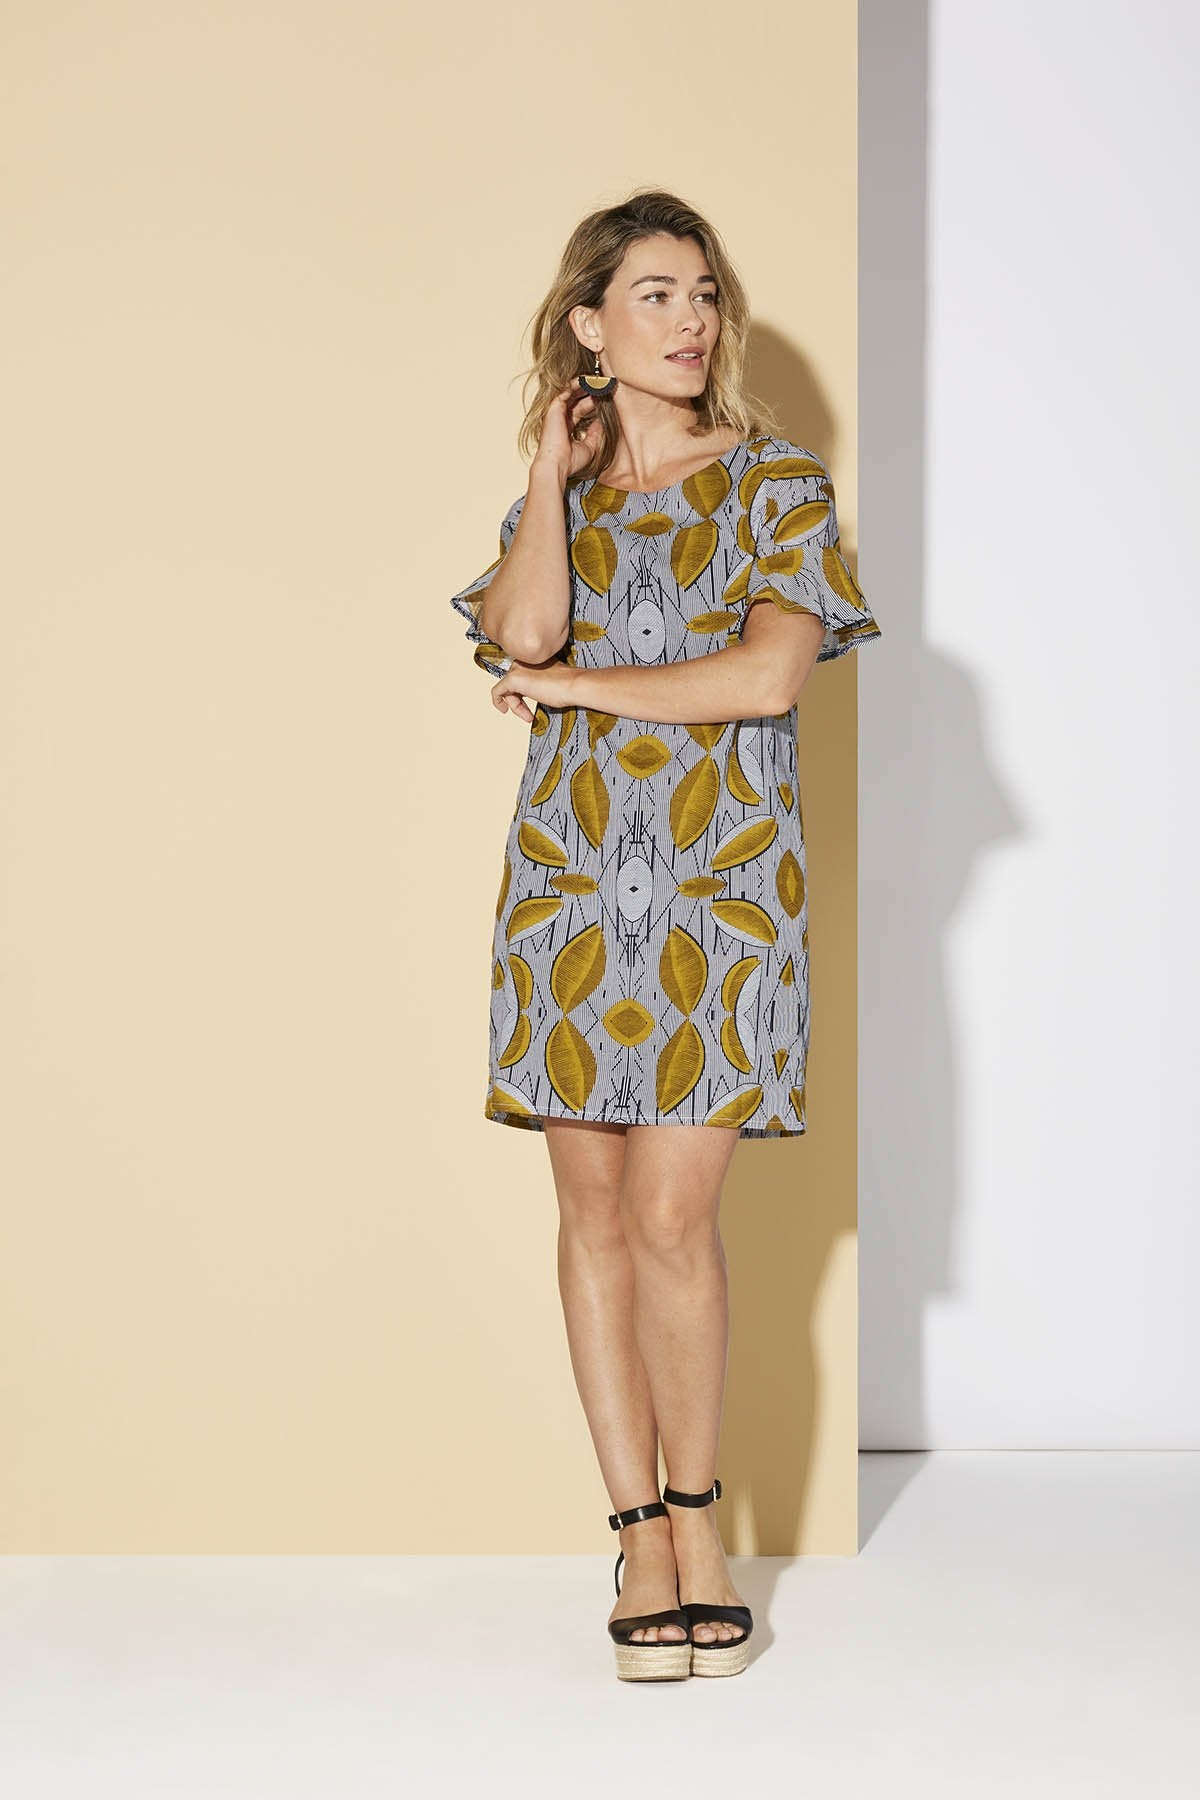 Loihi dress is a festive printed dress, loose and straight with a ruffle sleeve. It can be worn with a belt for a more fitted look, if needed.